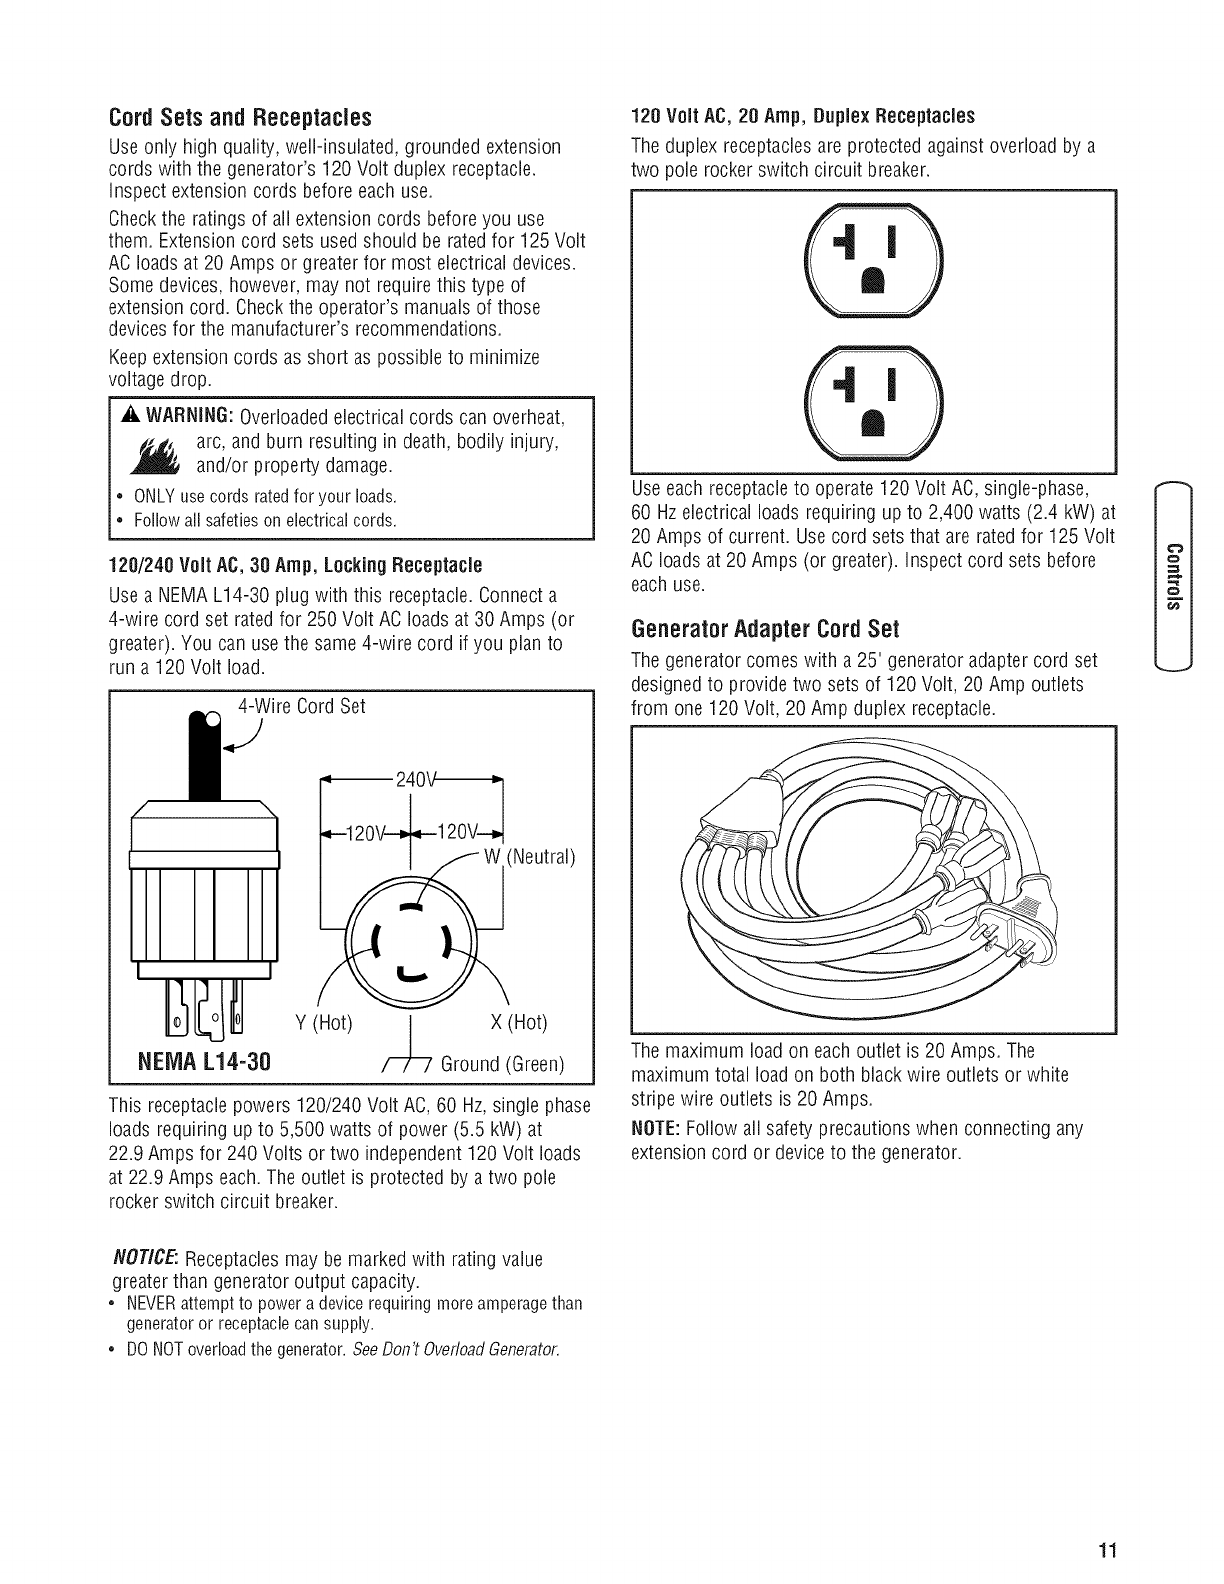 Briggs Stratton 030430 User Manual Generator Manuals And Guides 120 240 Volt Receptacles How To Install A Switch Or Receptacle Cordsets Andreceptacles